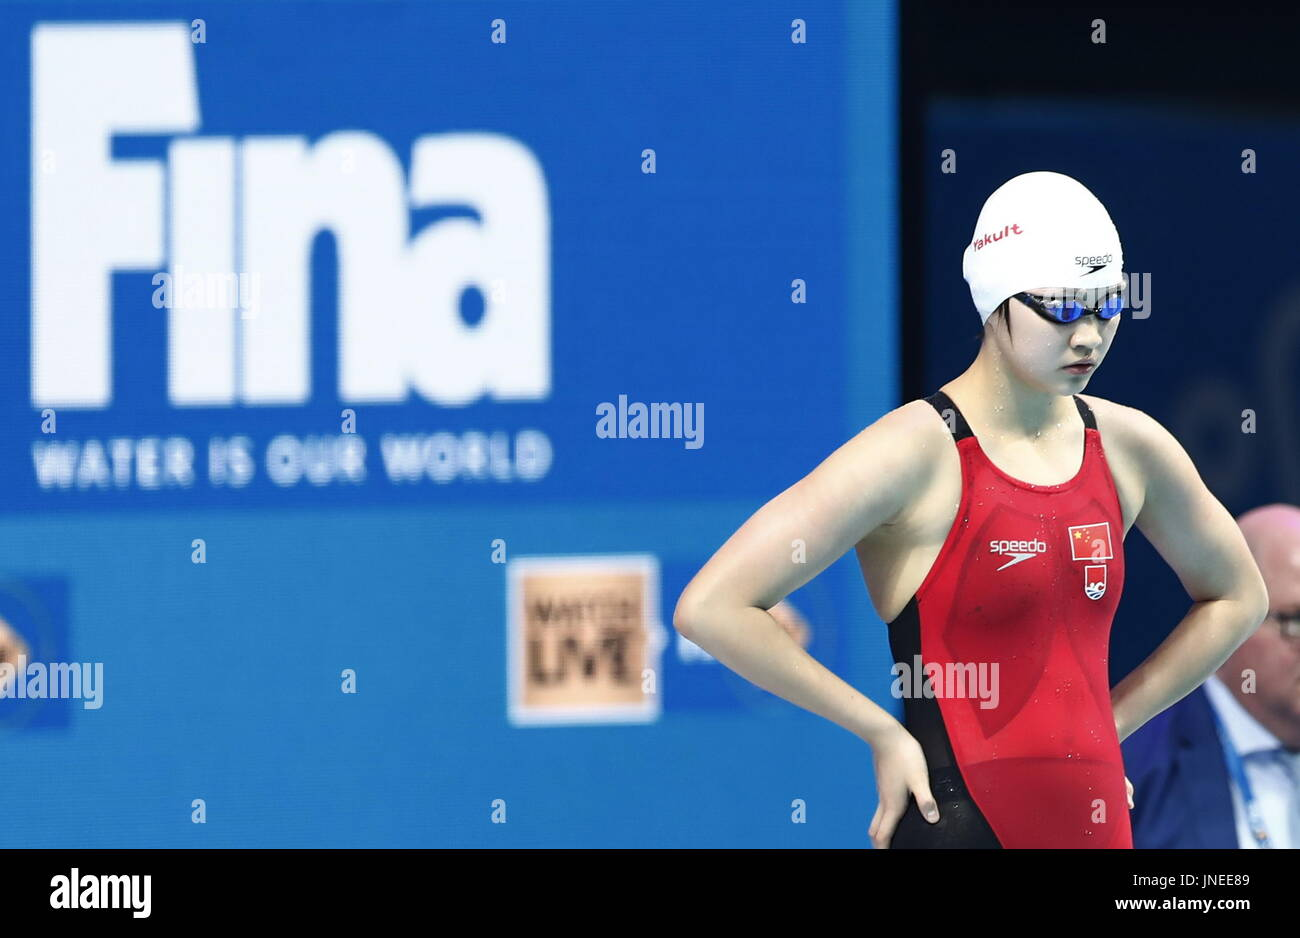 Budapest. 29th July, 2017. China's Li Bingjie is seen prior to the women's 800m freestyle swimming final at the Stock Photo